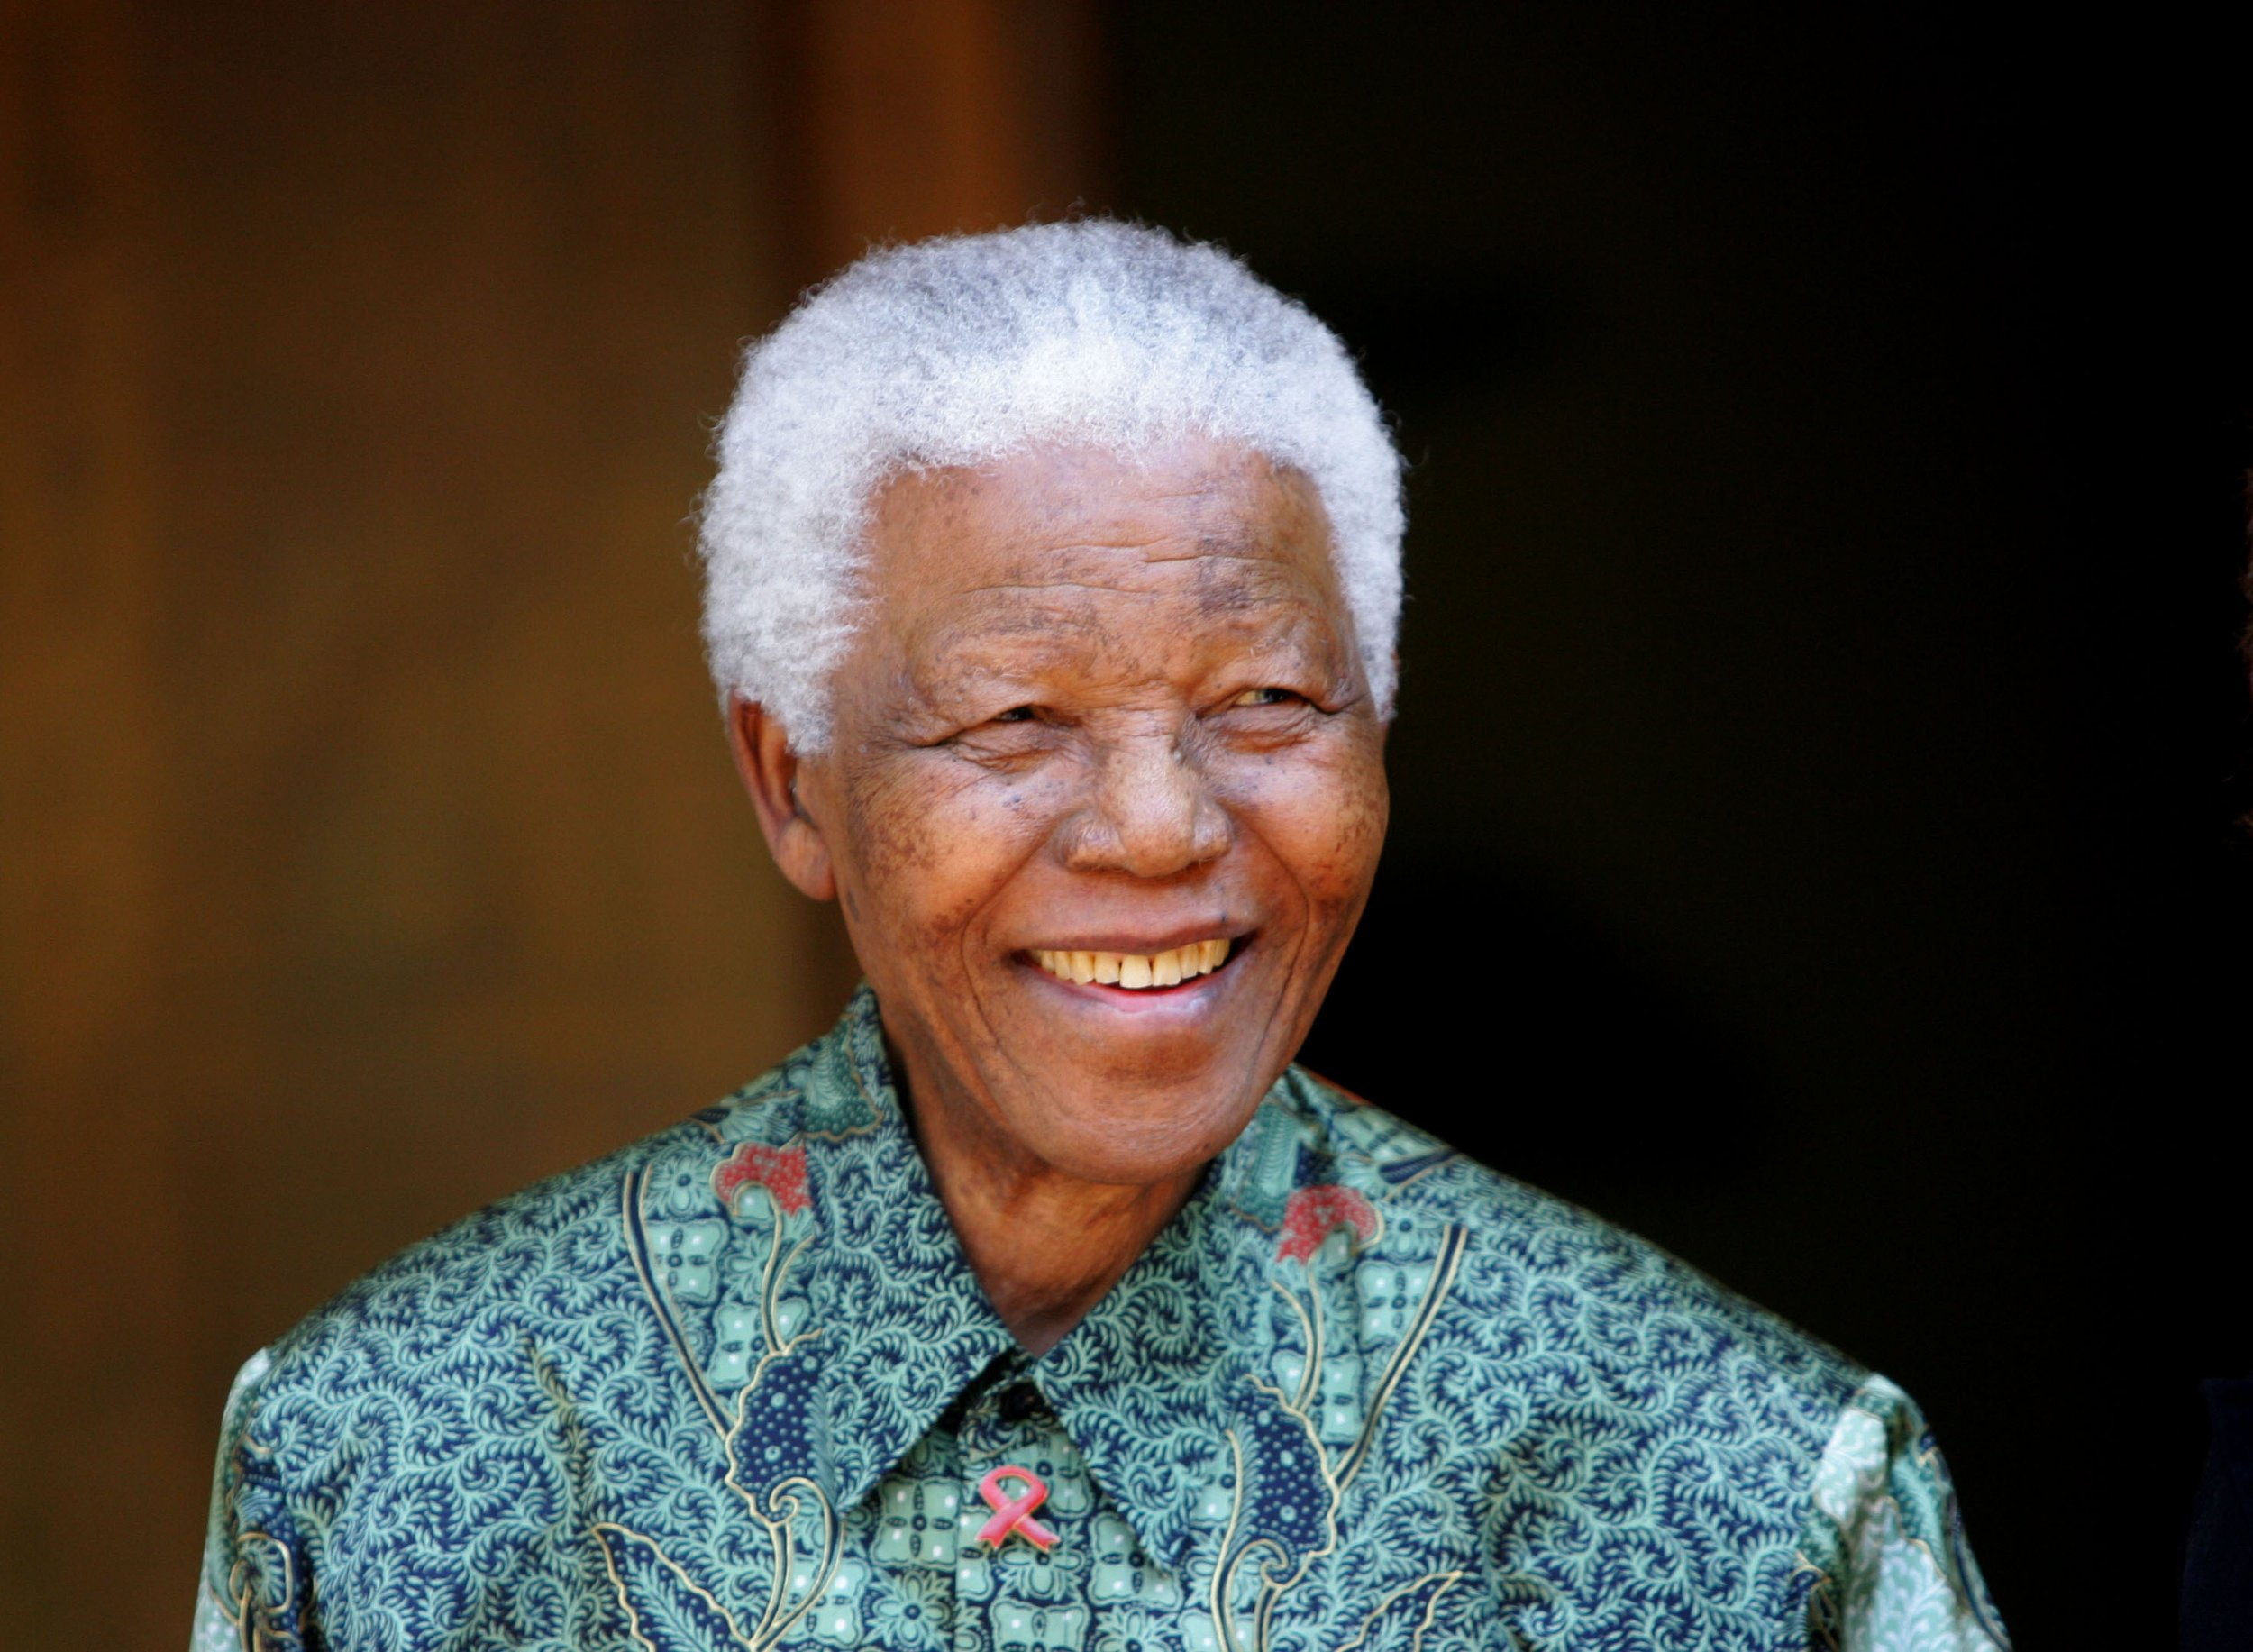 Nelson Mandela Quotes 10 Sayings From The Anti Apartheid Revolutionary